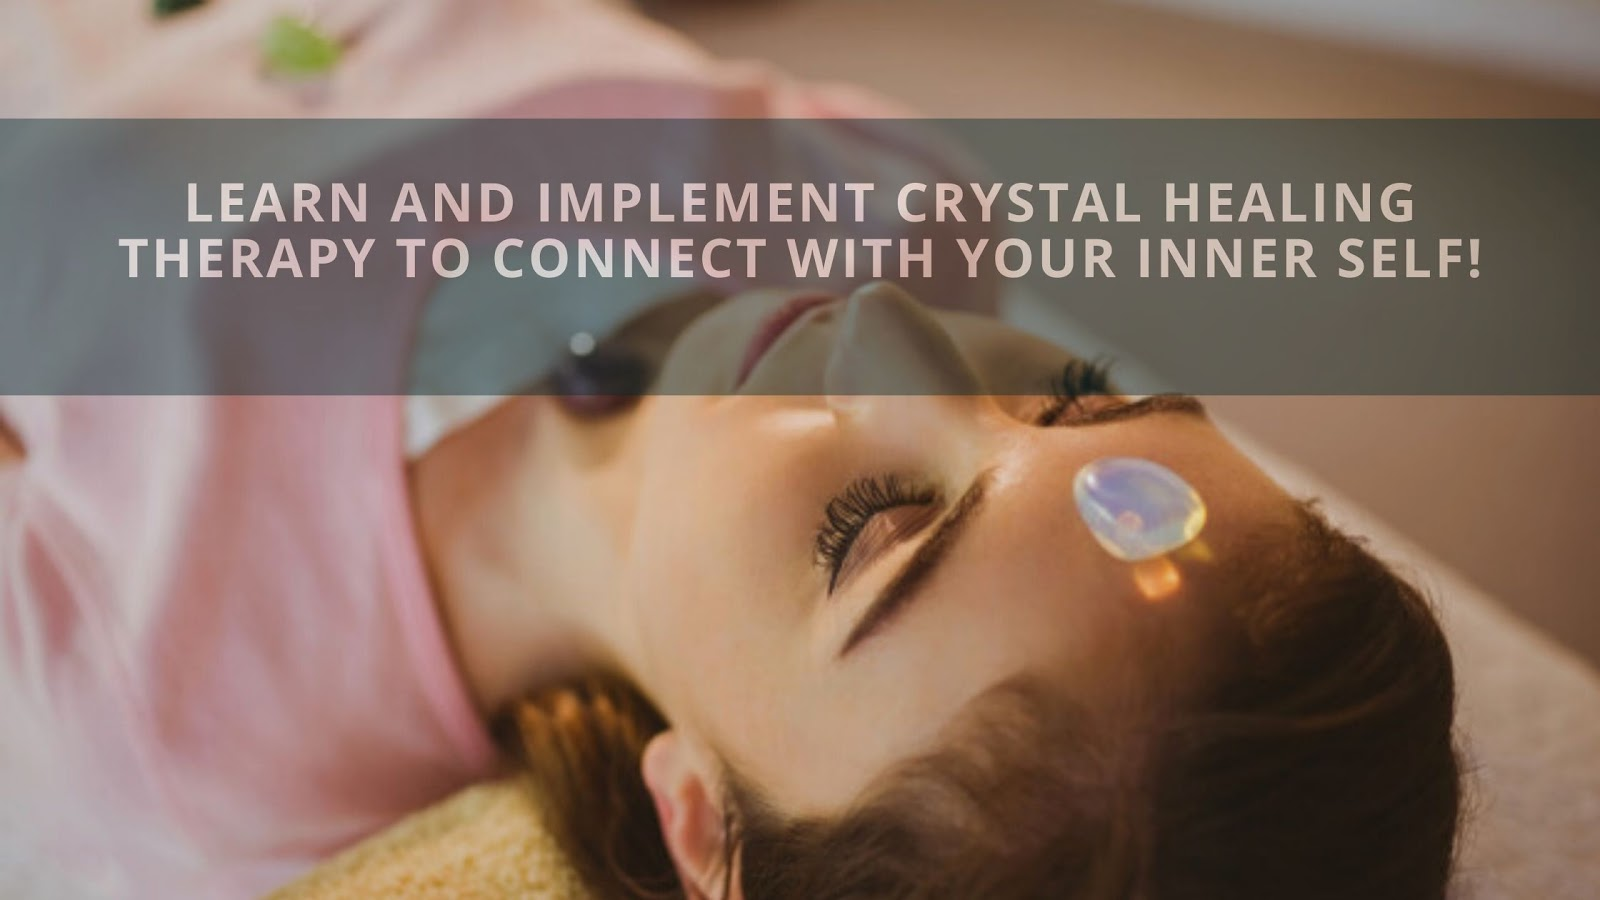 Learn And Implement Crystal Healing Therapy To Connect With Your Inner Self!